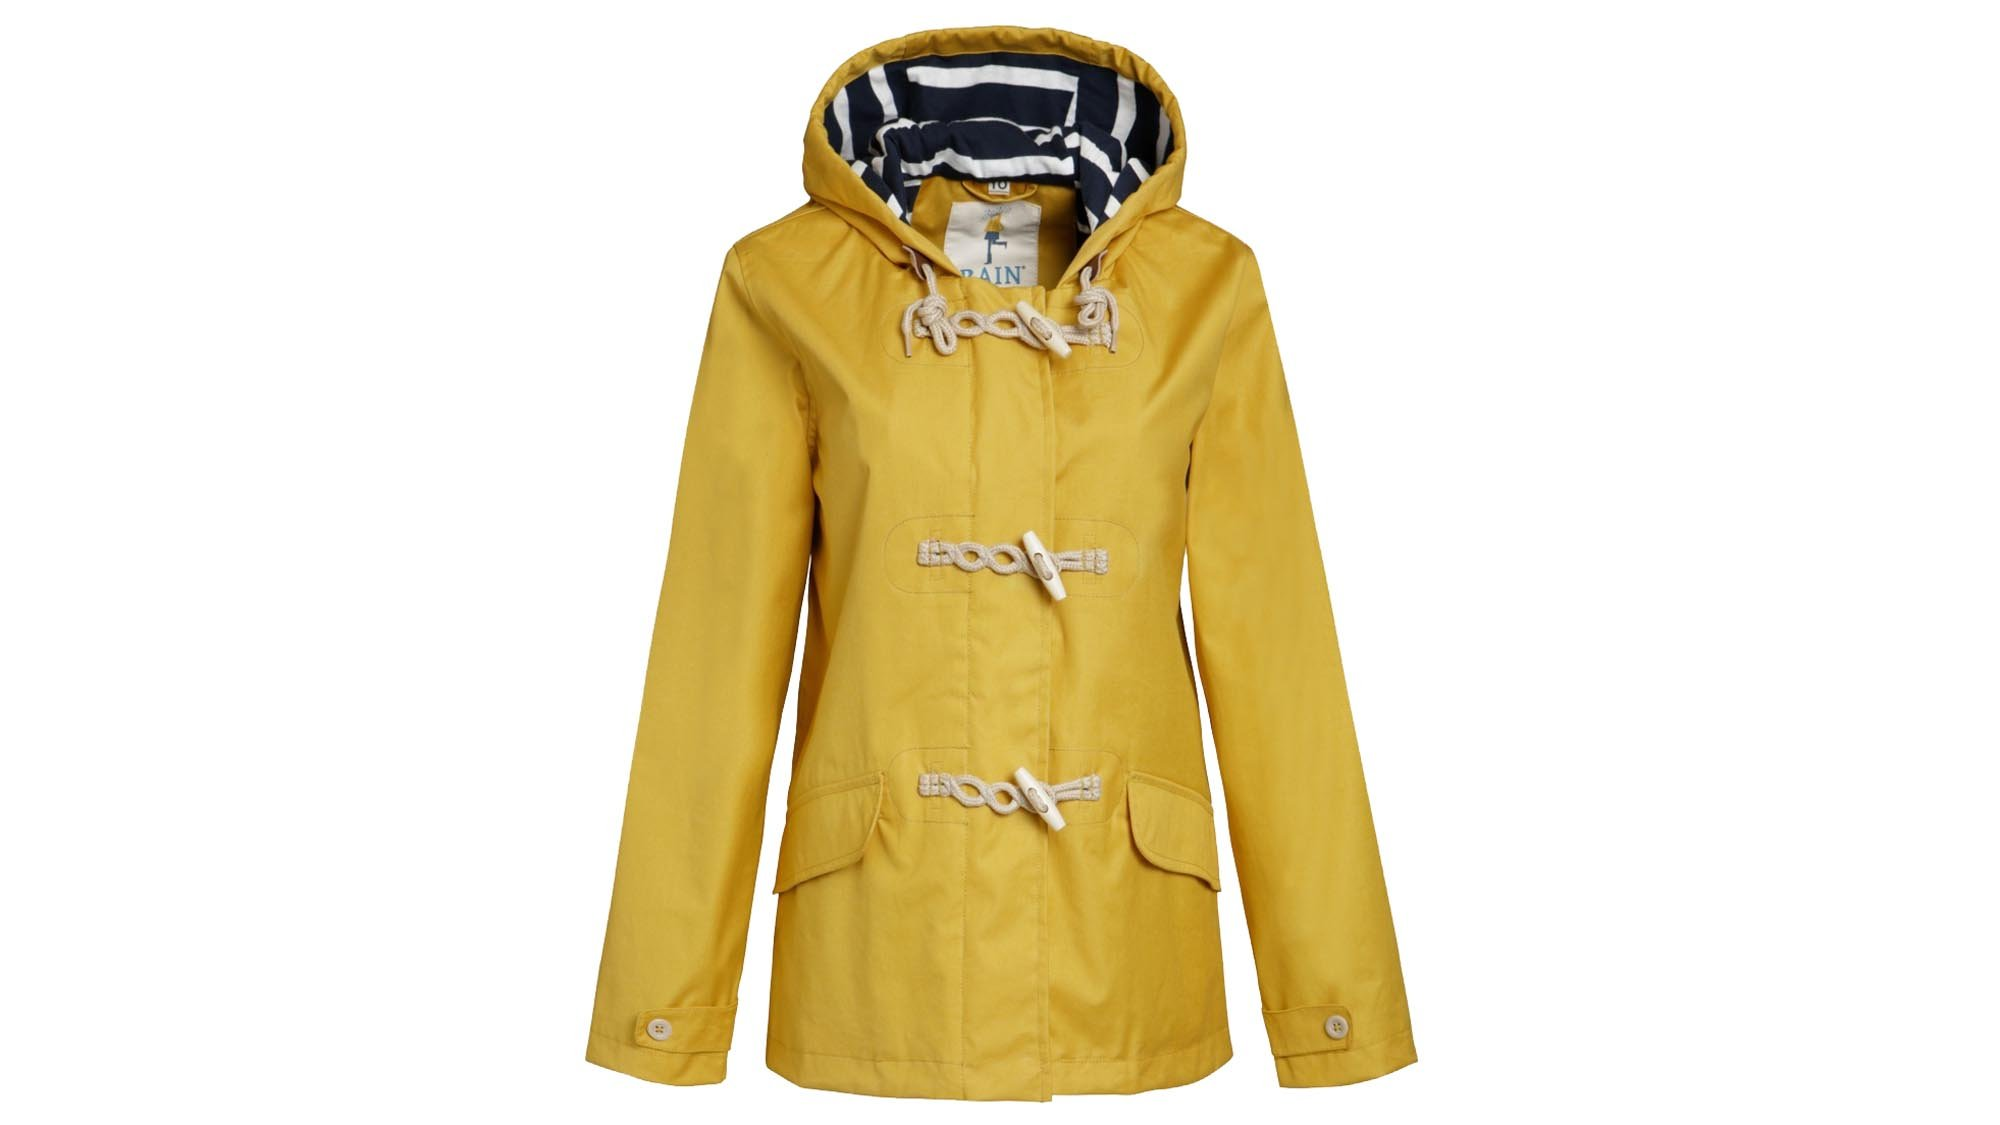 97a6247fb You'll spot Seasalt's cheerful yellow Seafolly jacket everywhere on rainy  days, probably because it combines technical waterproofing abilities with  lovely ...